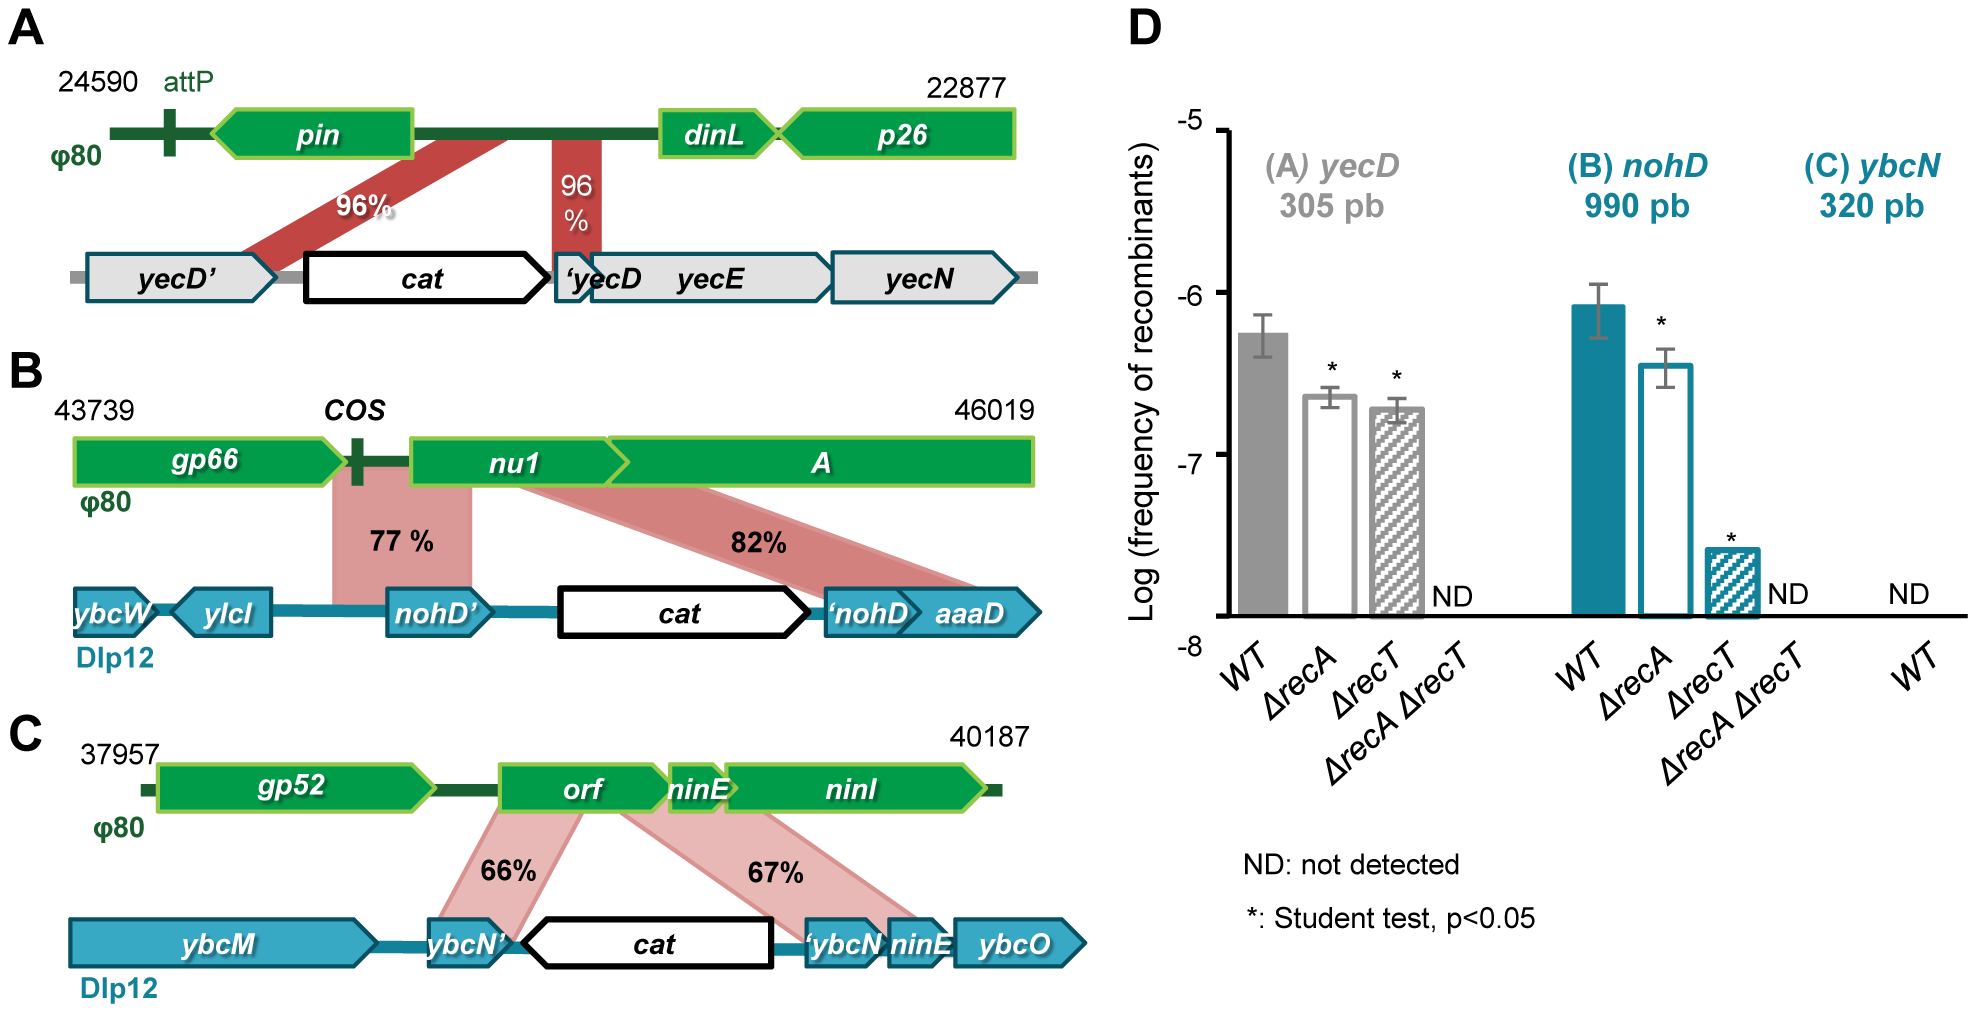 Formation of Φ80 hybrids also depend on phage recombinase.